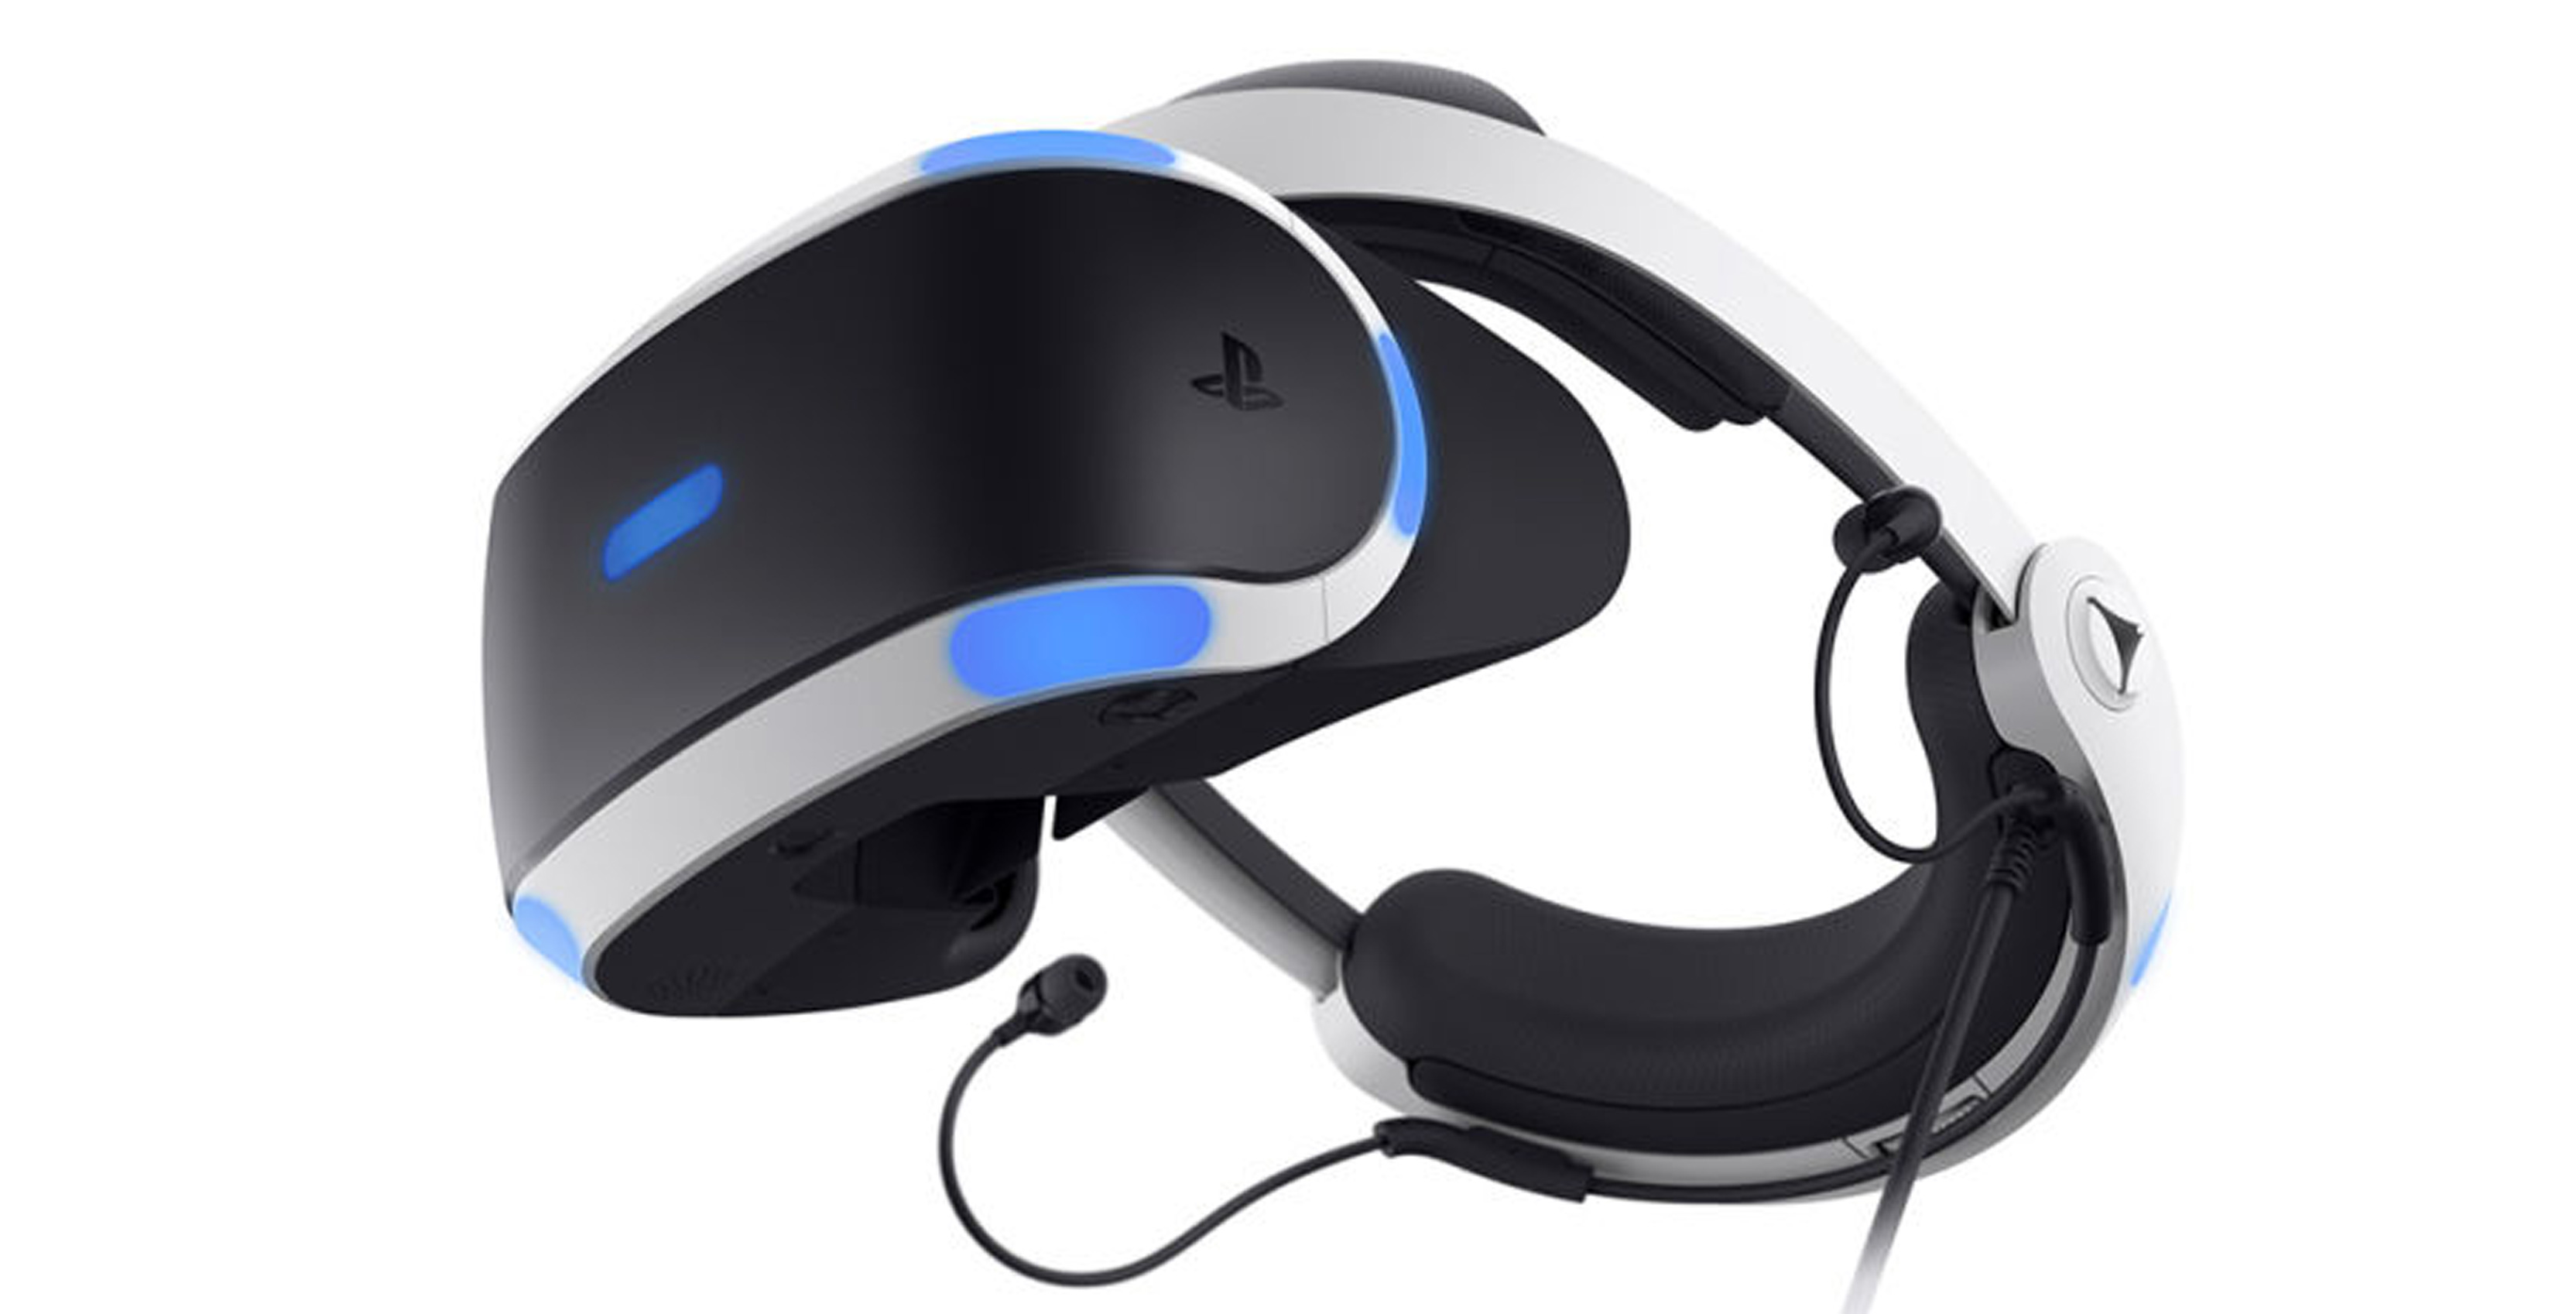 The new PlayStation VR headset features a new design